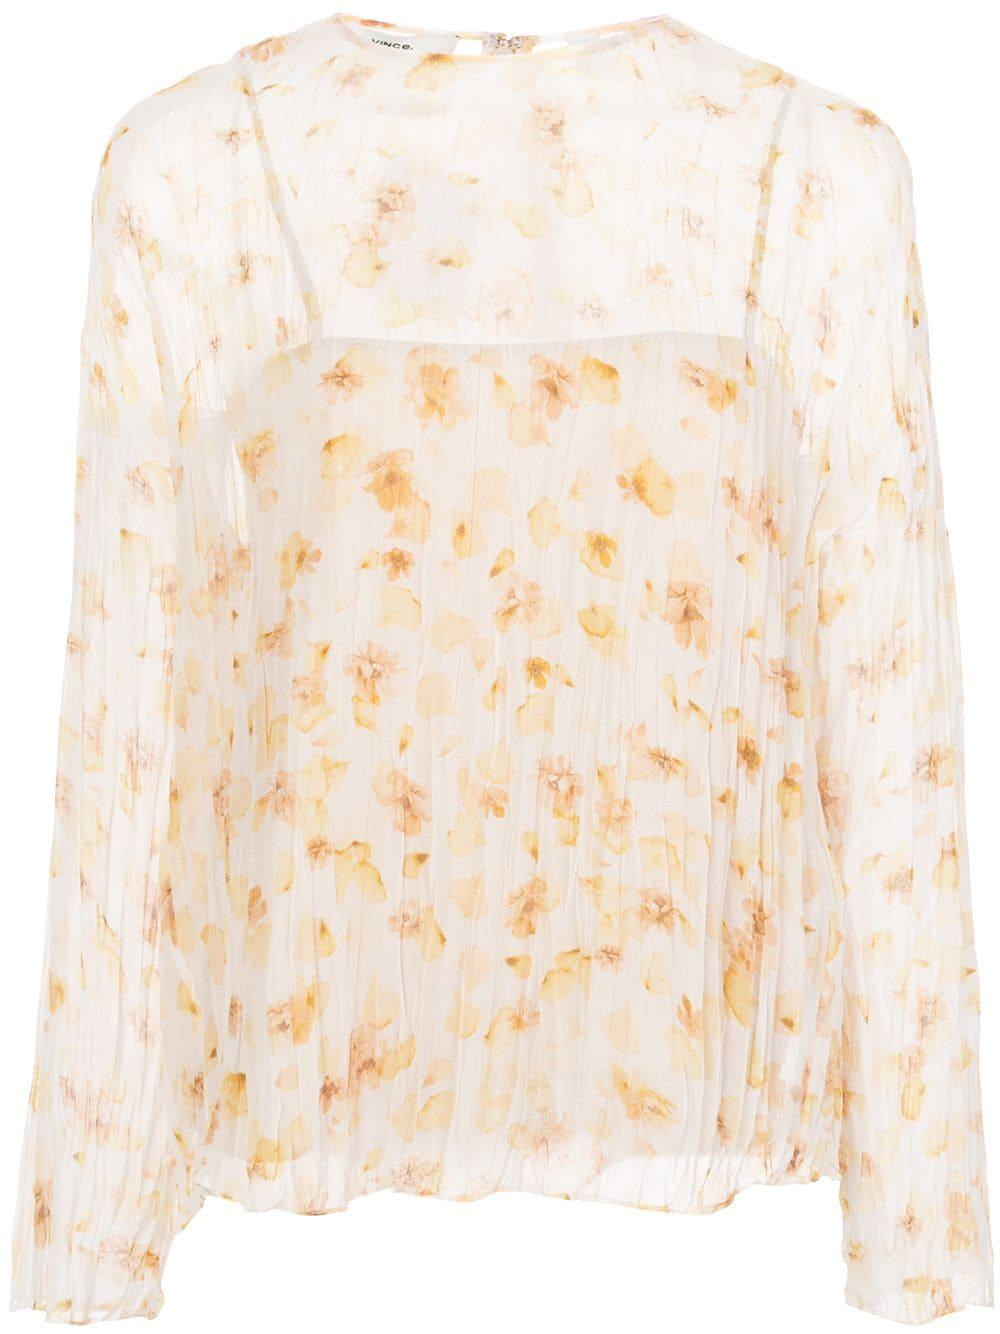 Pressed Petal Blouse